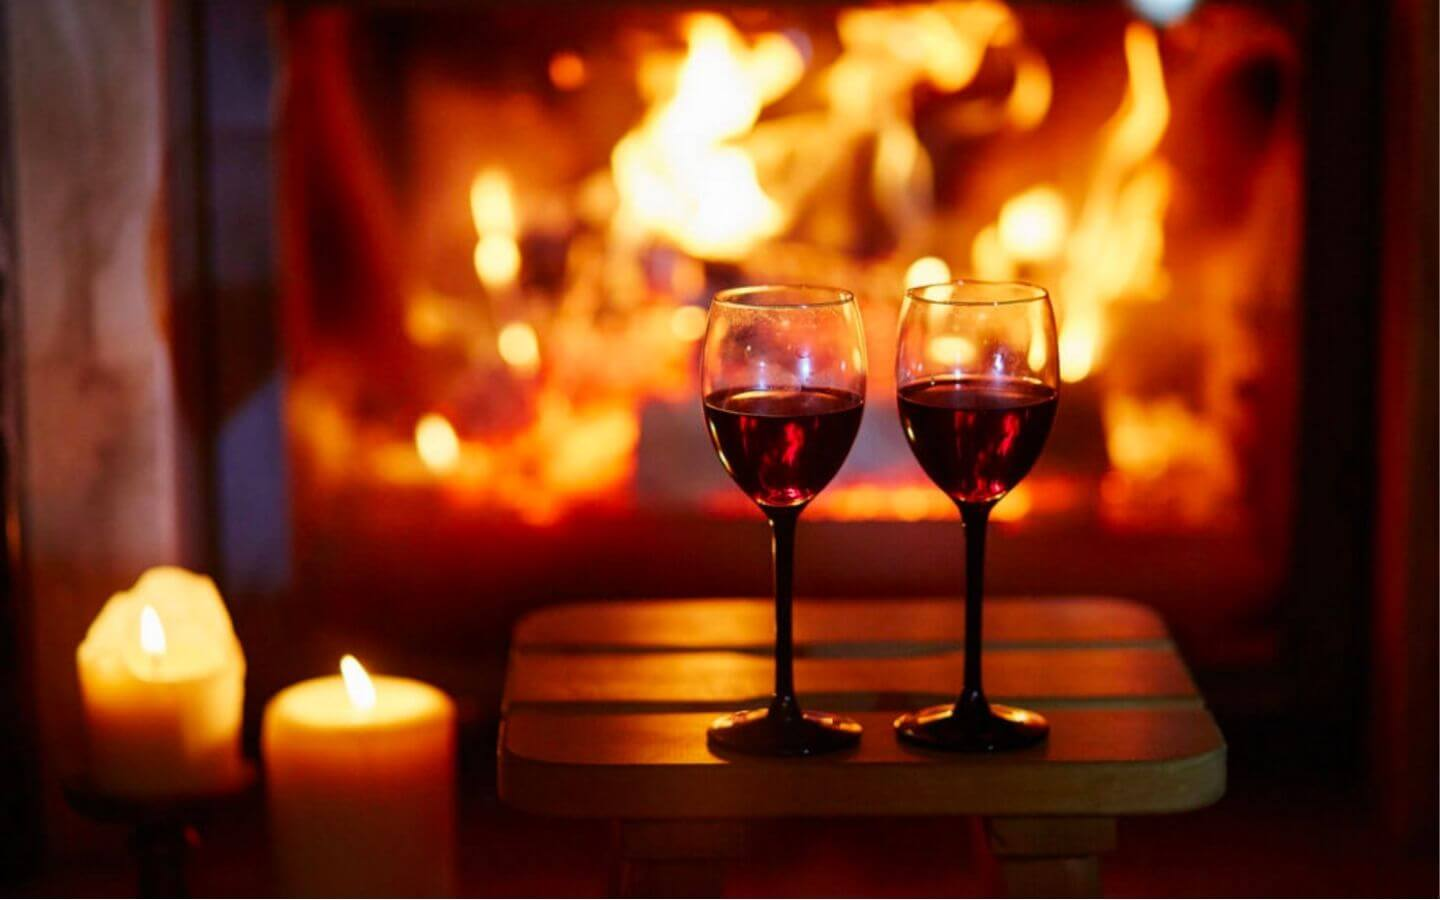 Lit candles and two wine glasses with red wine in front of a glowing fireplace